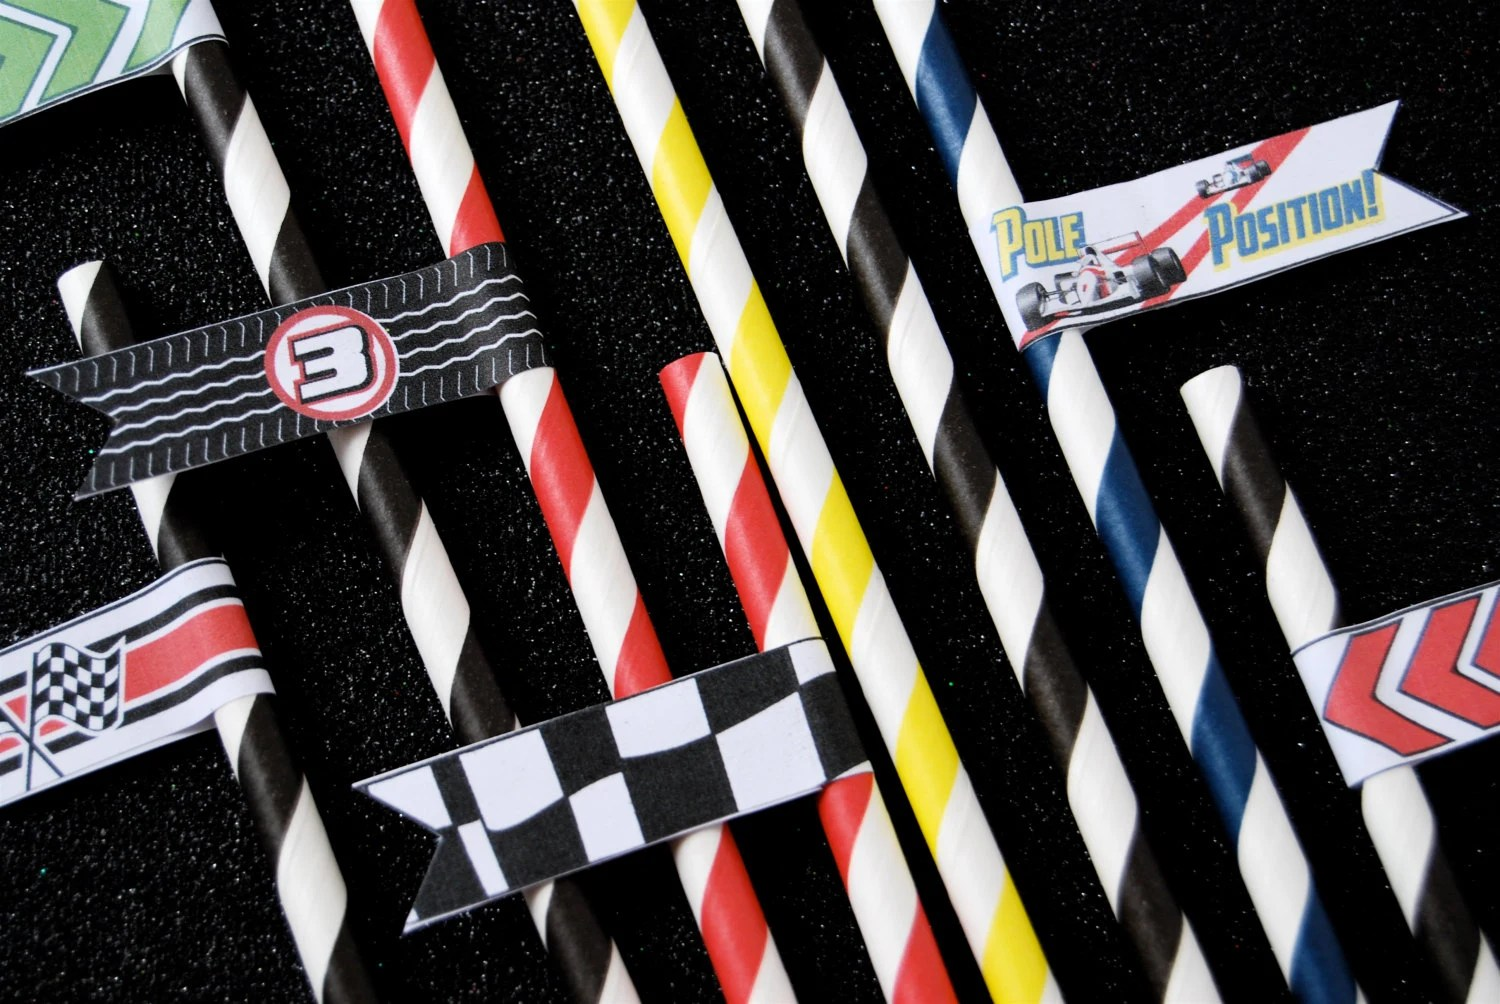 Racing Race Car Printable Party Flags For By Cupcakesocial